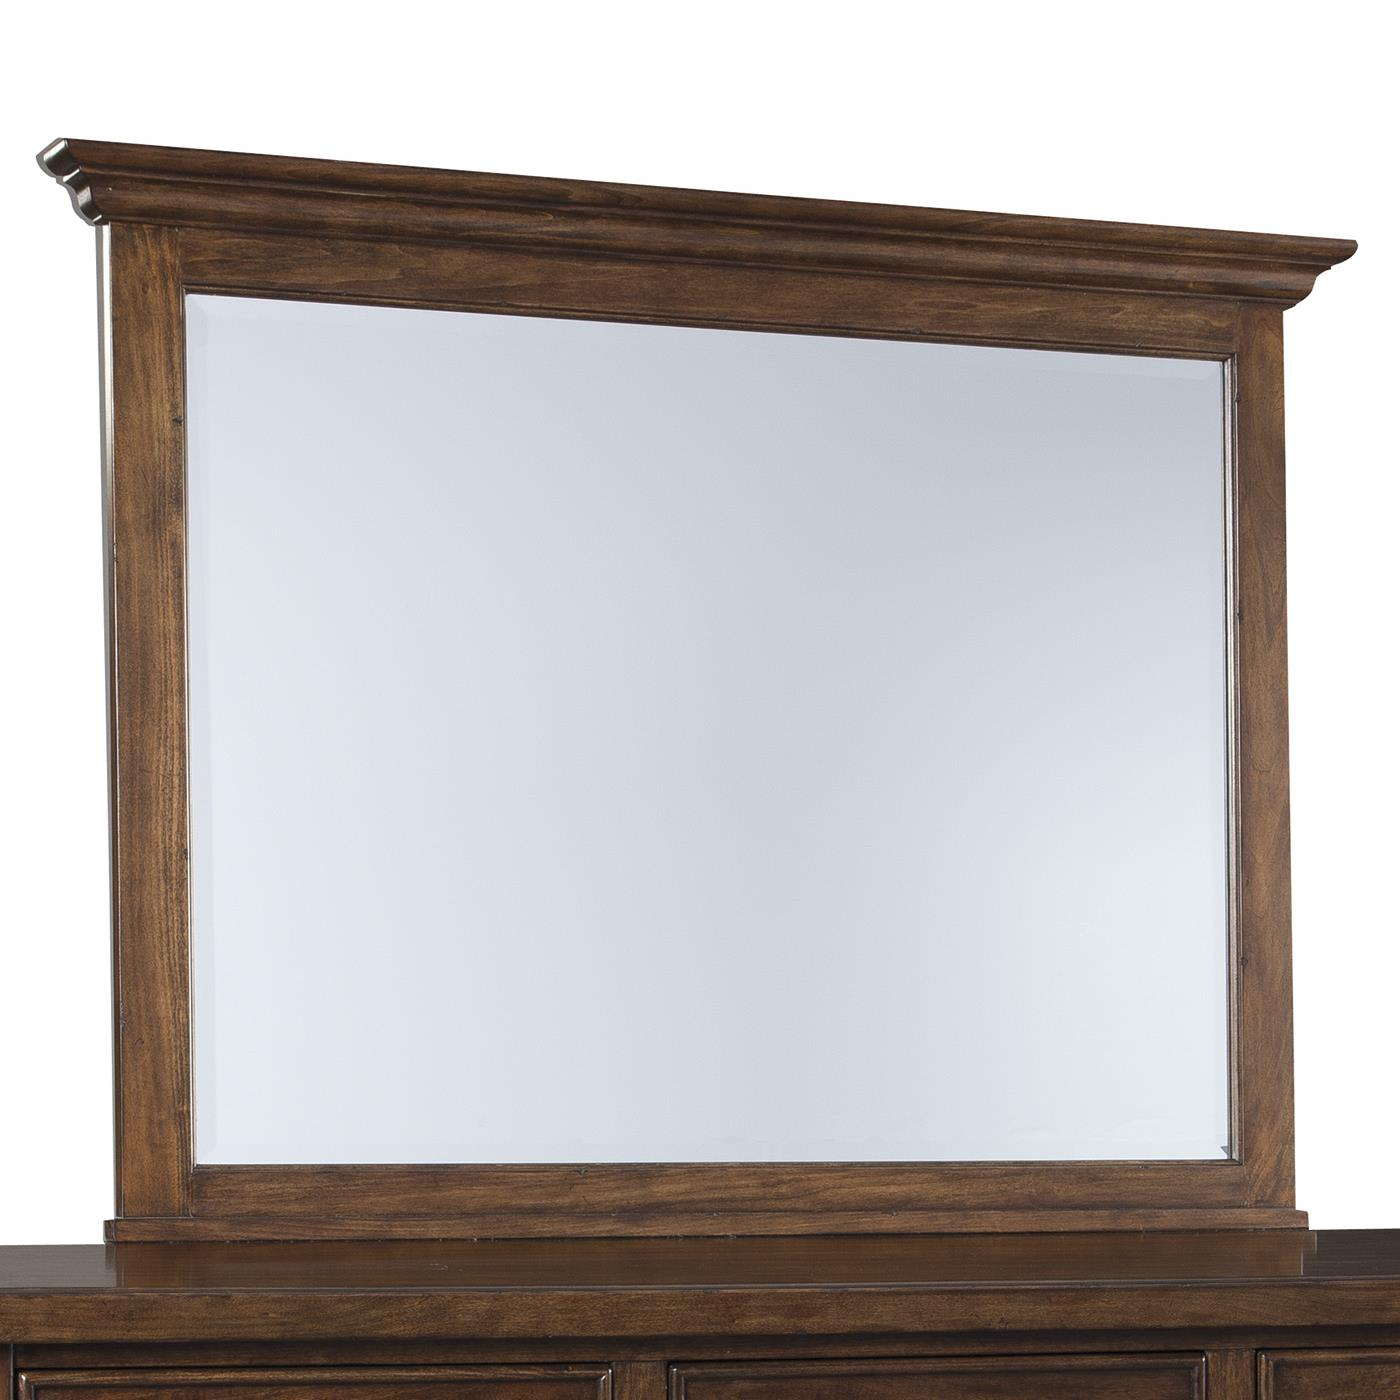 Signature Design by Ashley Chaddinfield Bedroom Mirror - Item Number: B648-36